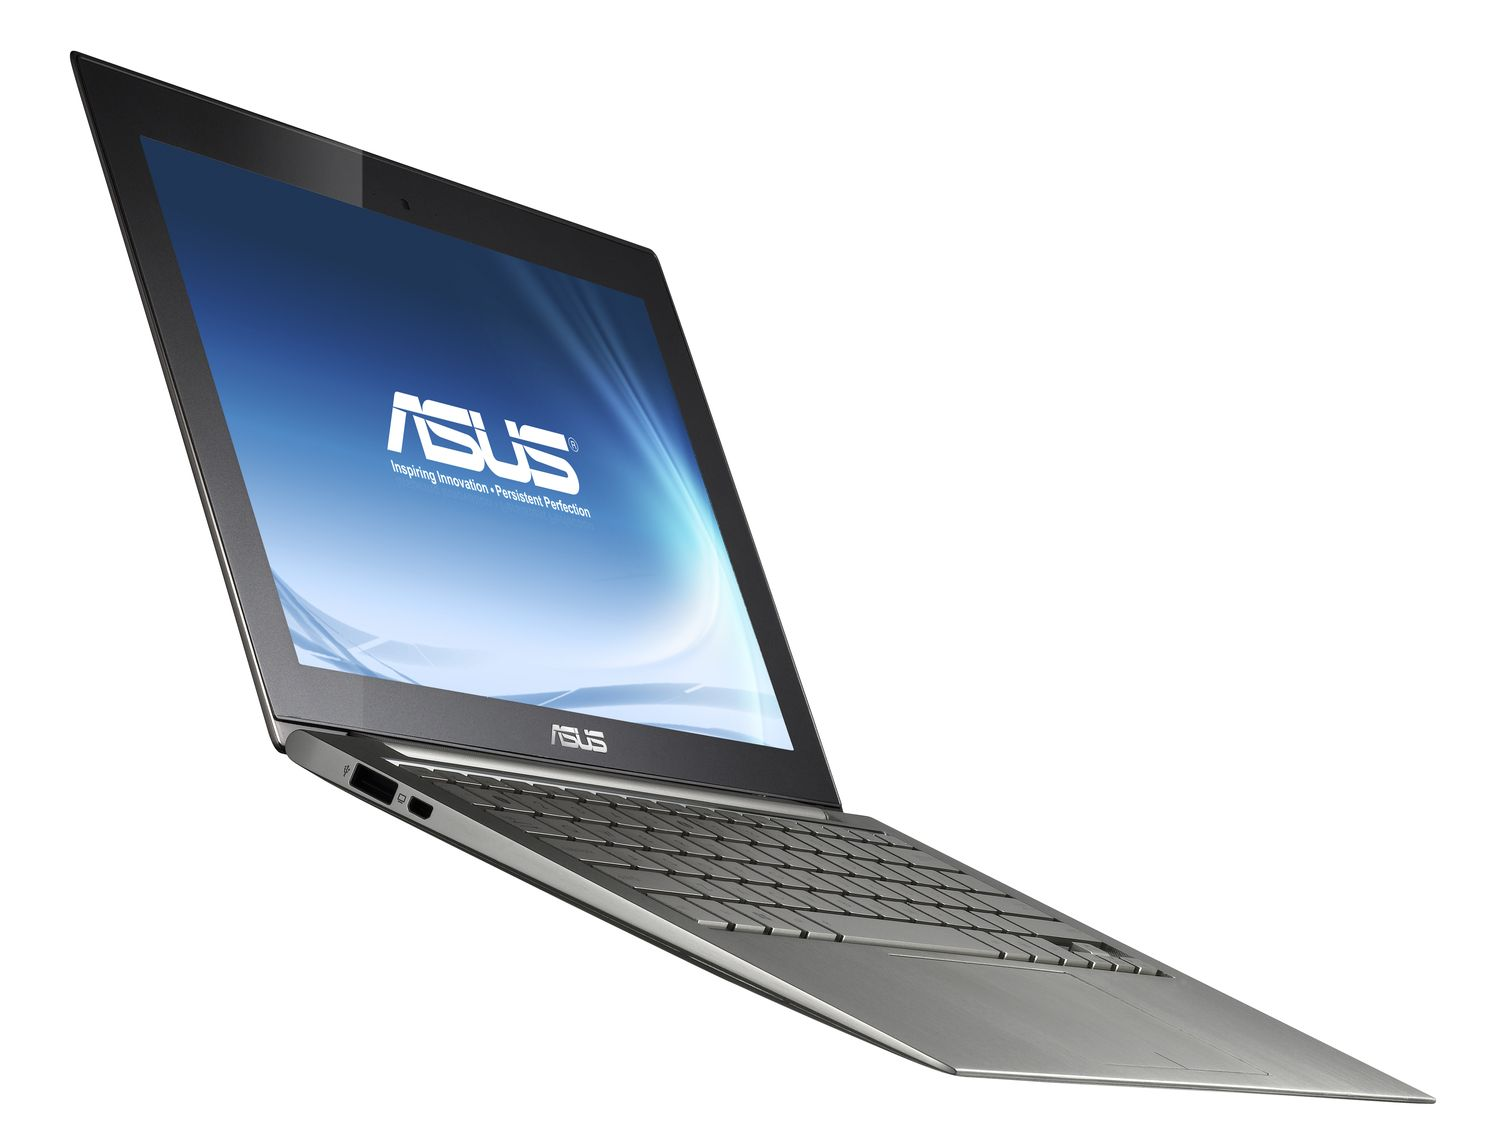 ASUS UX42VS BLUETOOTH TREIBER WINDOWS 8